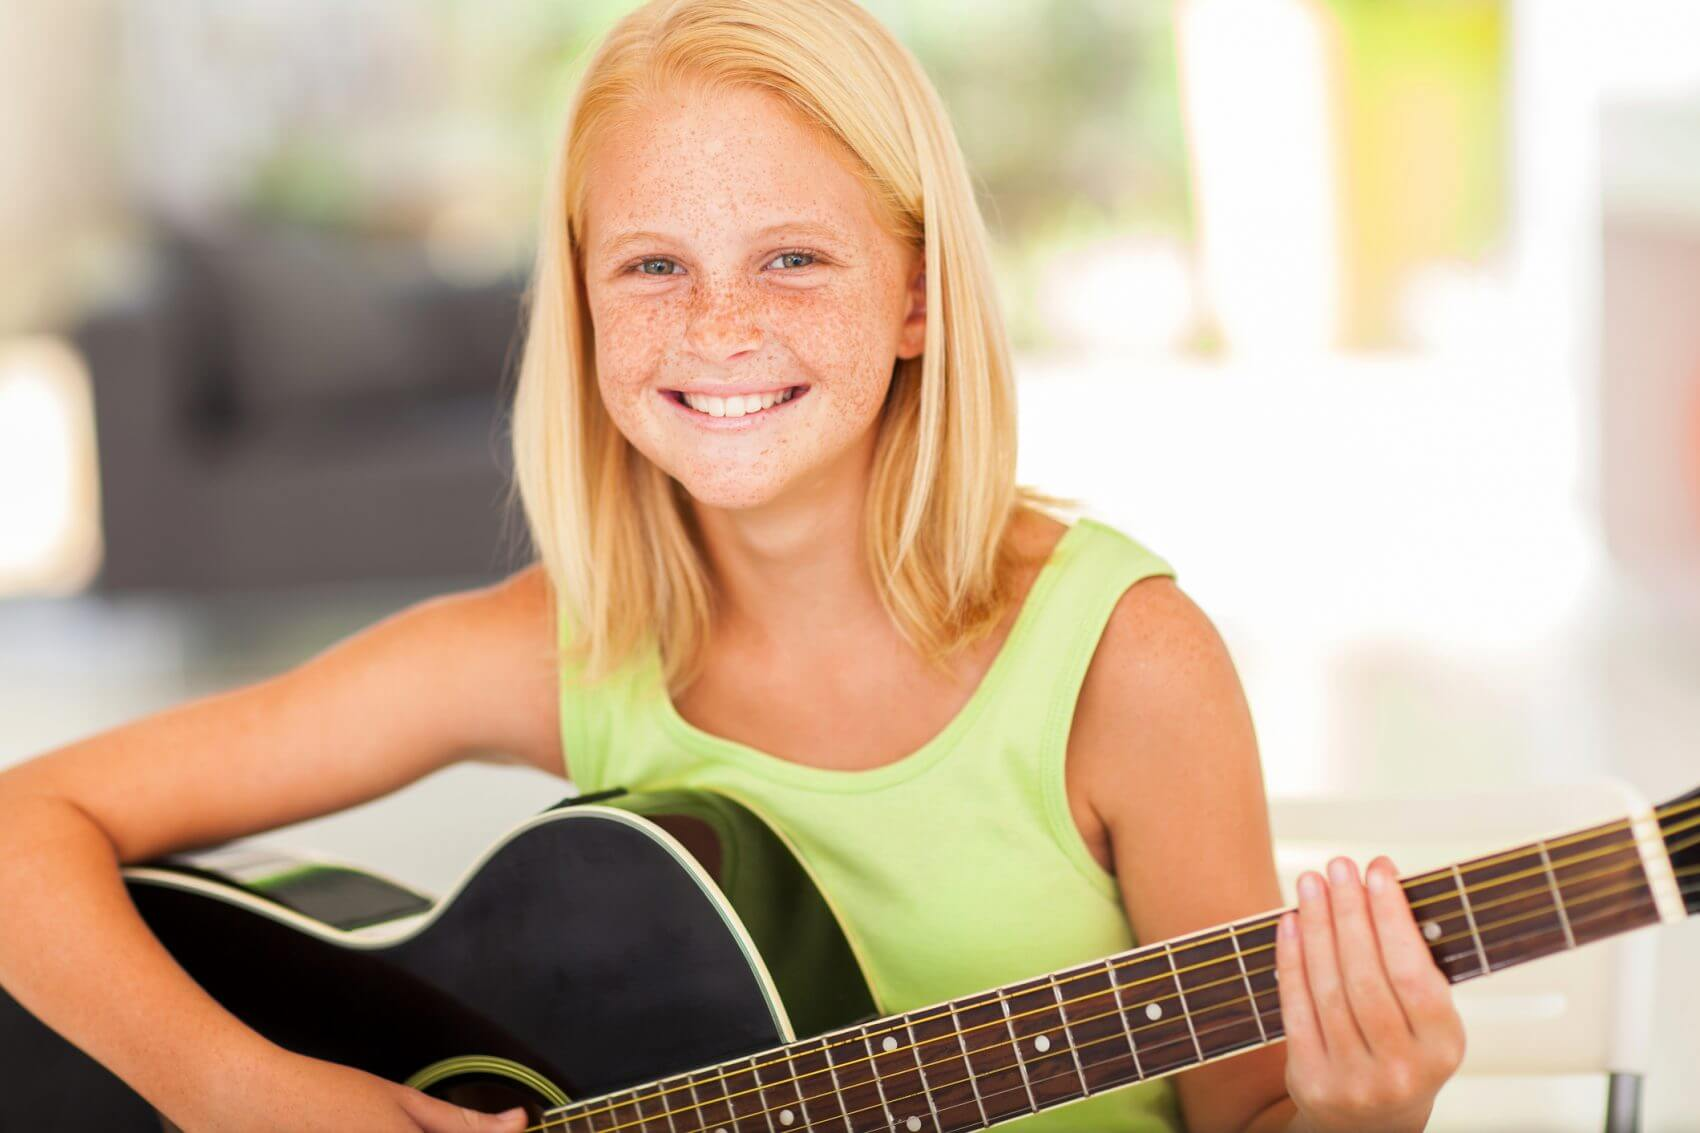 Happy girl playing guitar at The Conservatory of Music in Katy TX